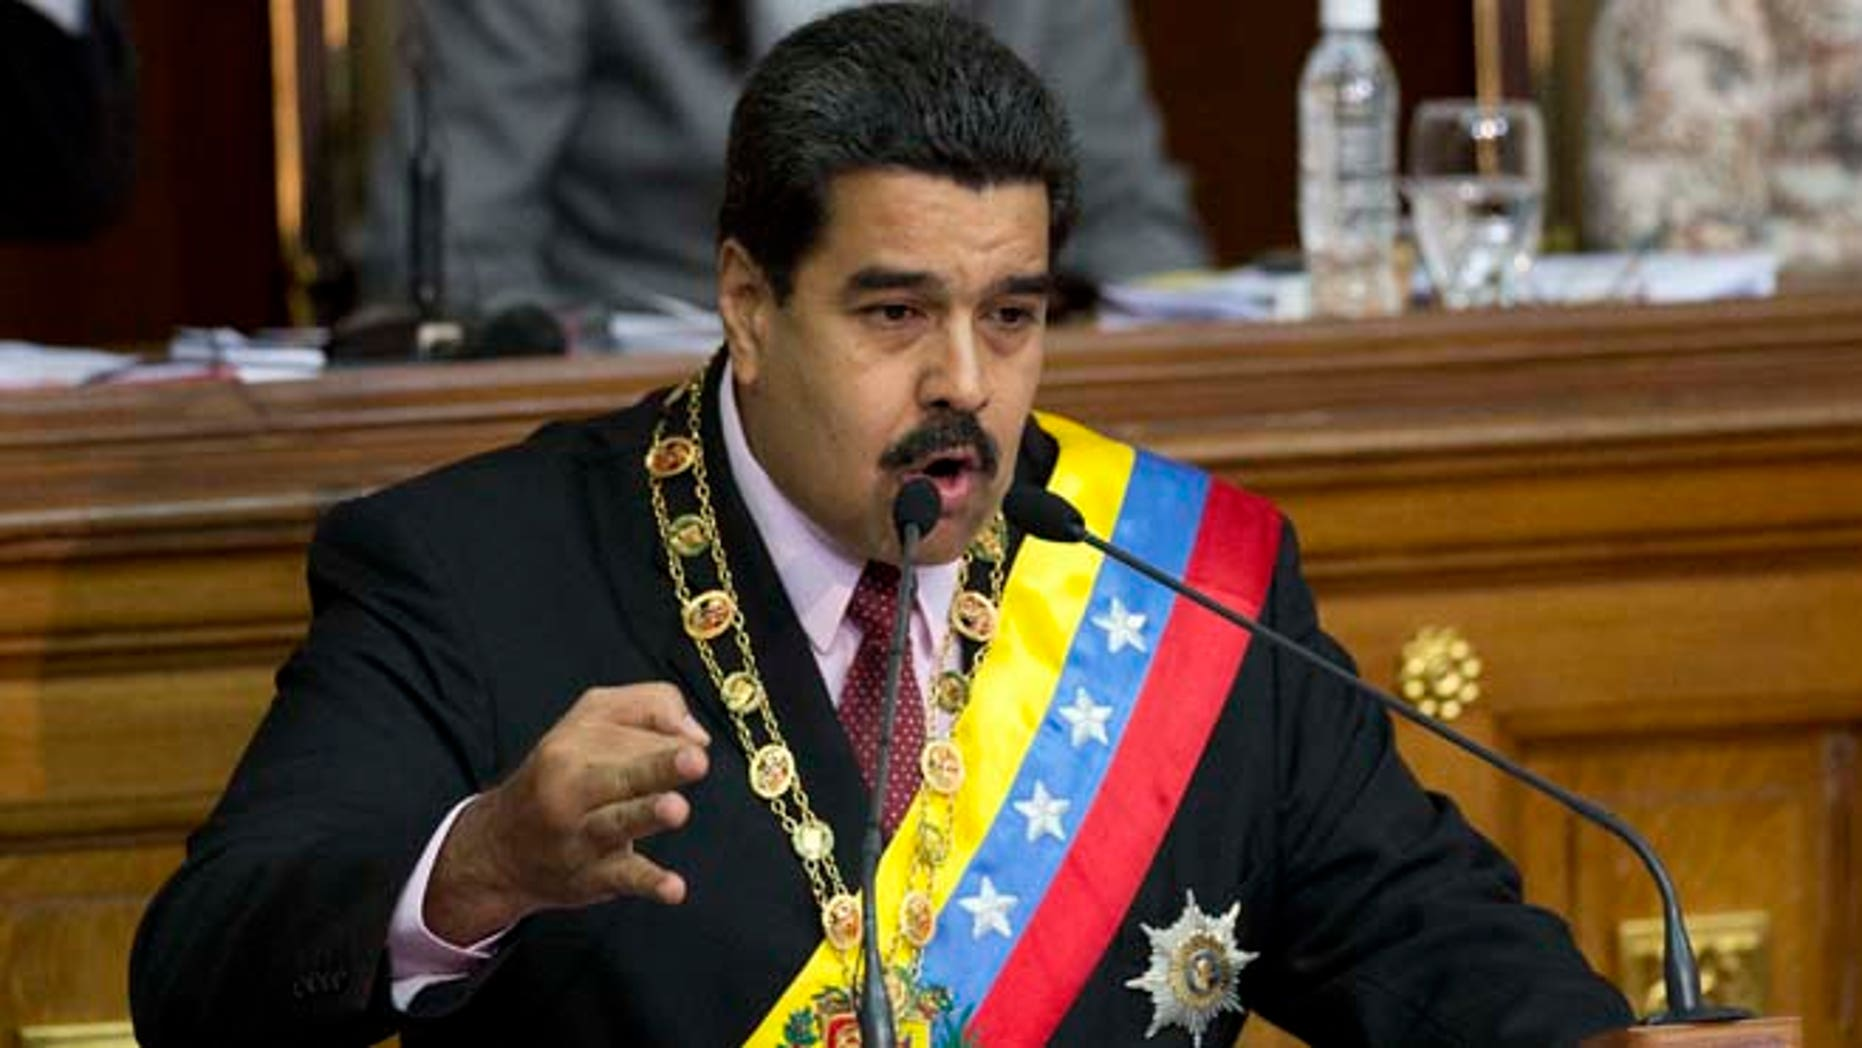 Venezuela's President Nicolás Maduro speaks at the National Assembly in Caracas, Venezuela, Monday, July 6, 2015. (AP Photo/Ariana Cubillos)